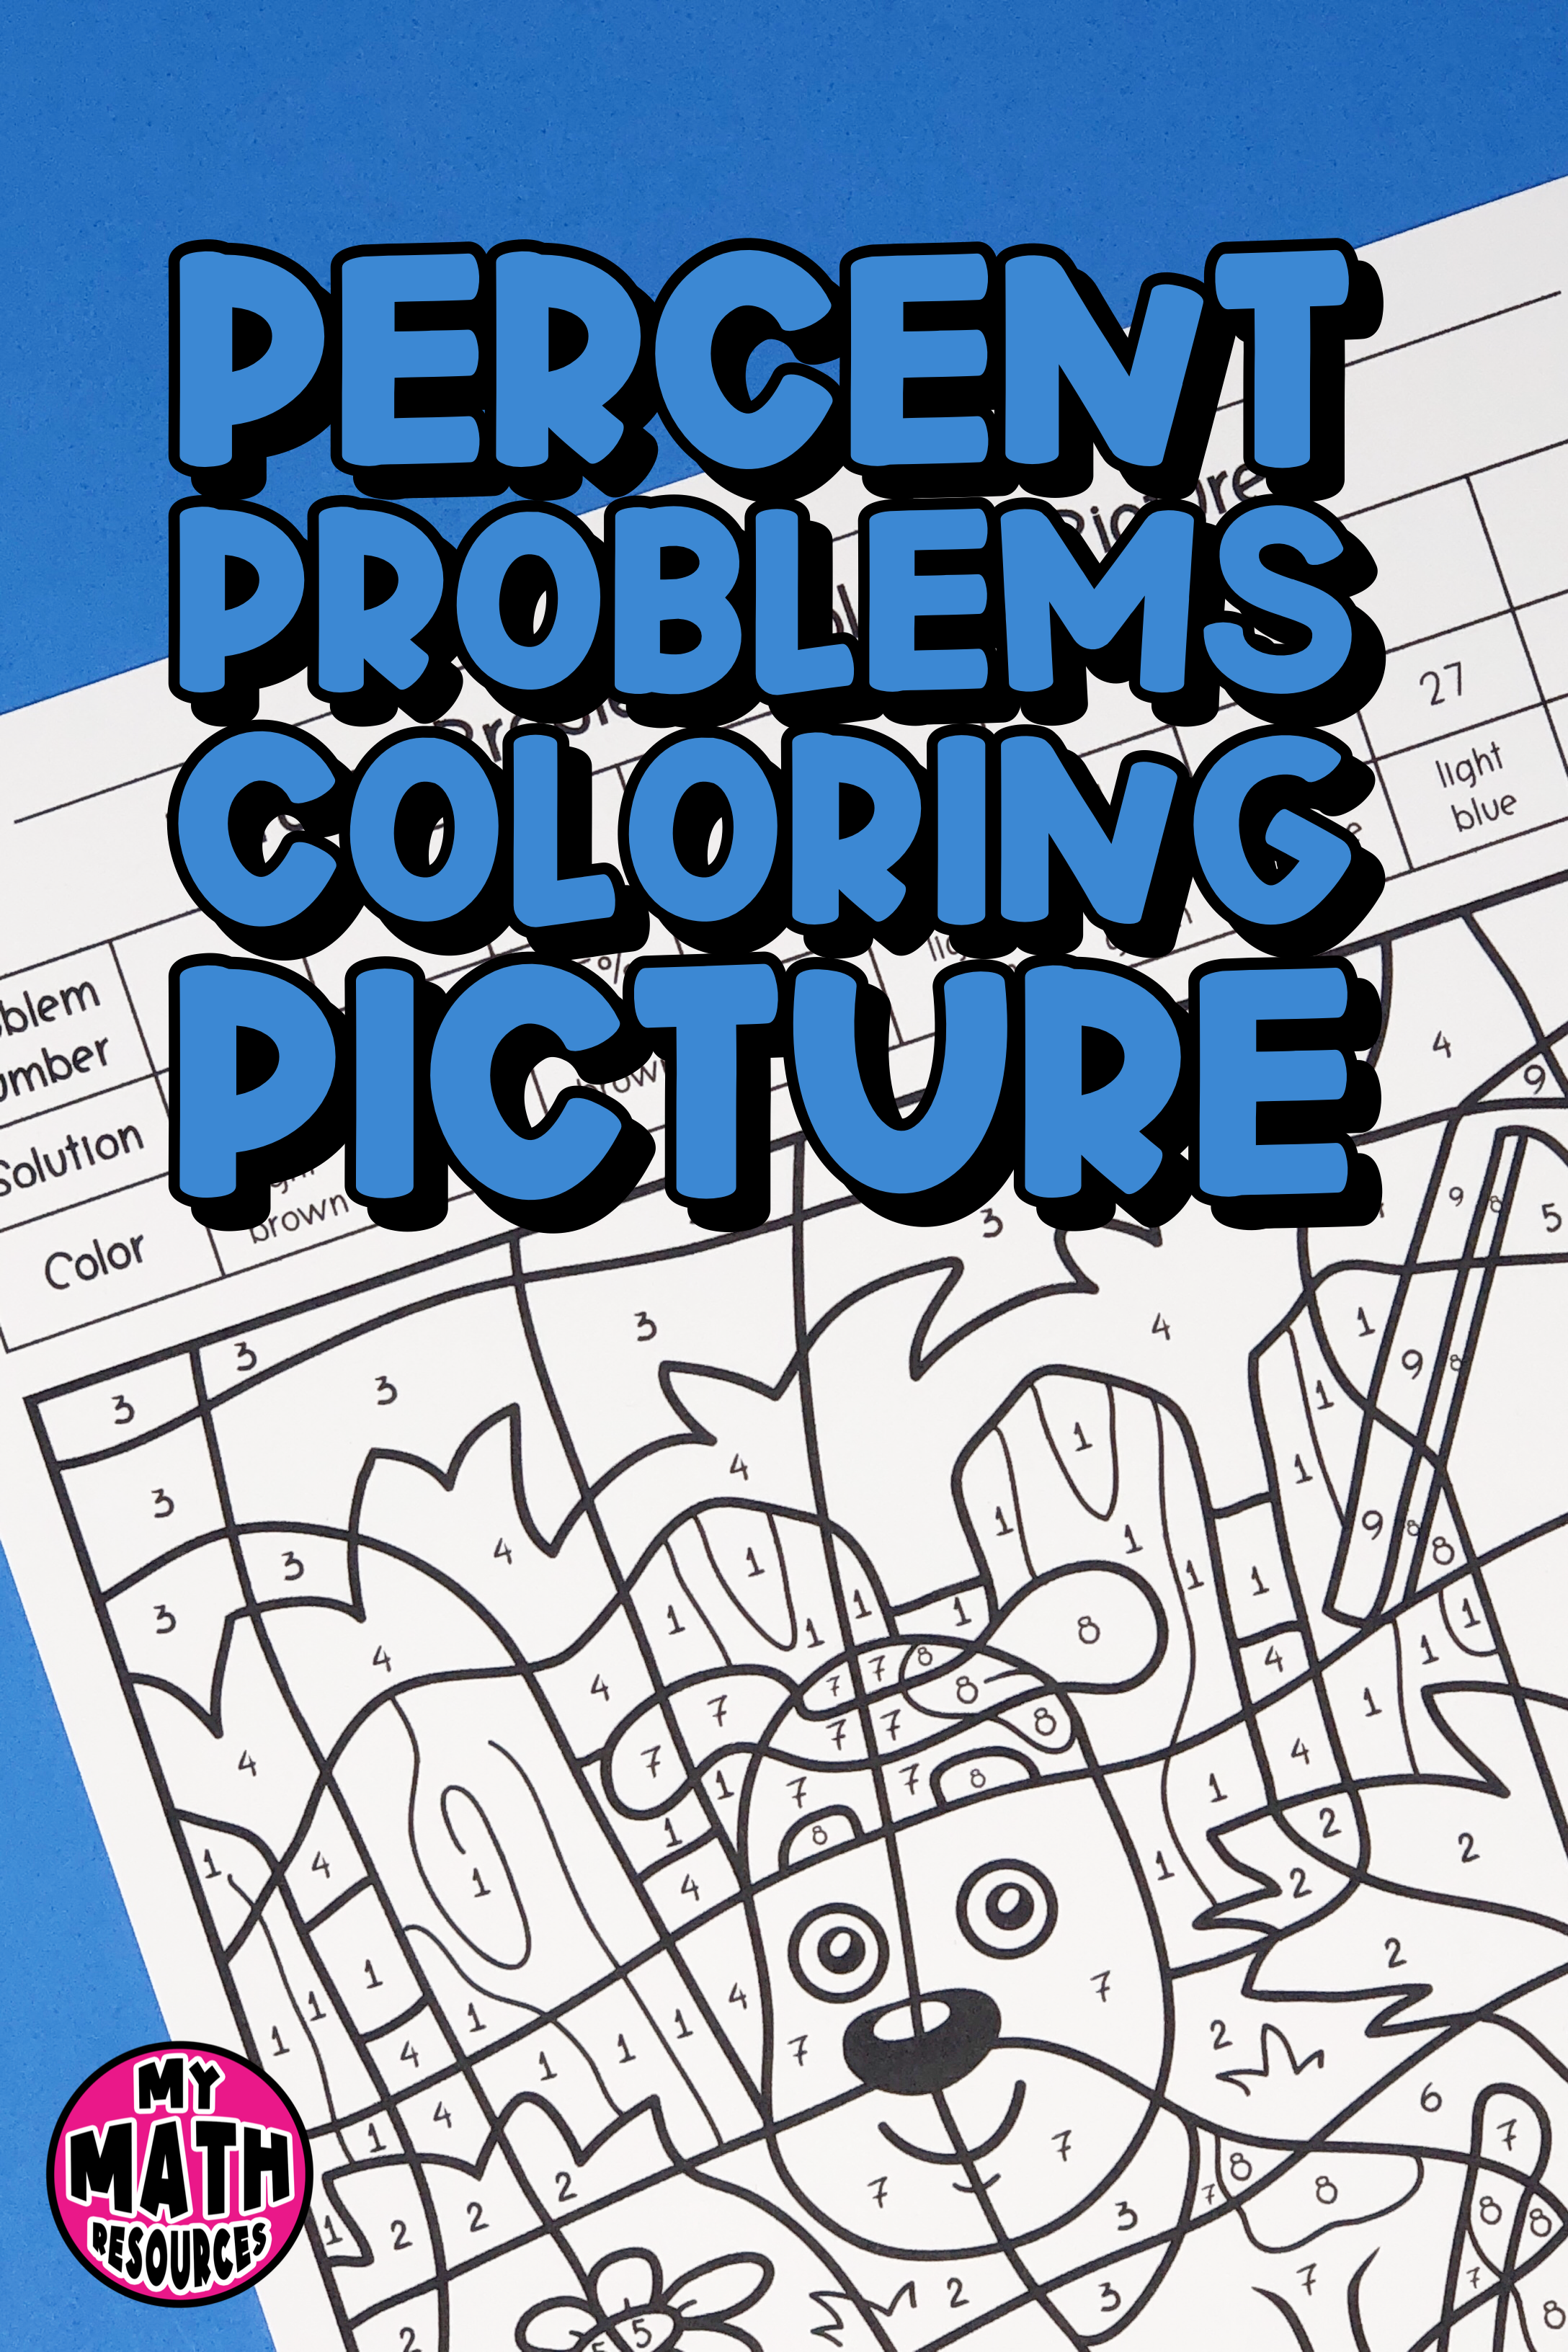 My Math Resources - Percent Problems Coloring Picture Worksheet   Middle  school math teacher [ 3264 x 2176 Pixel ]